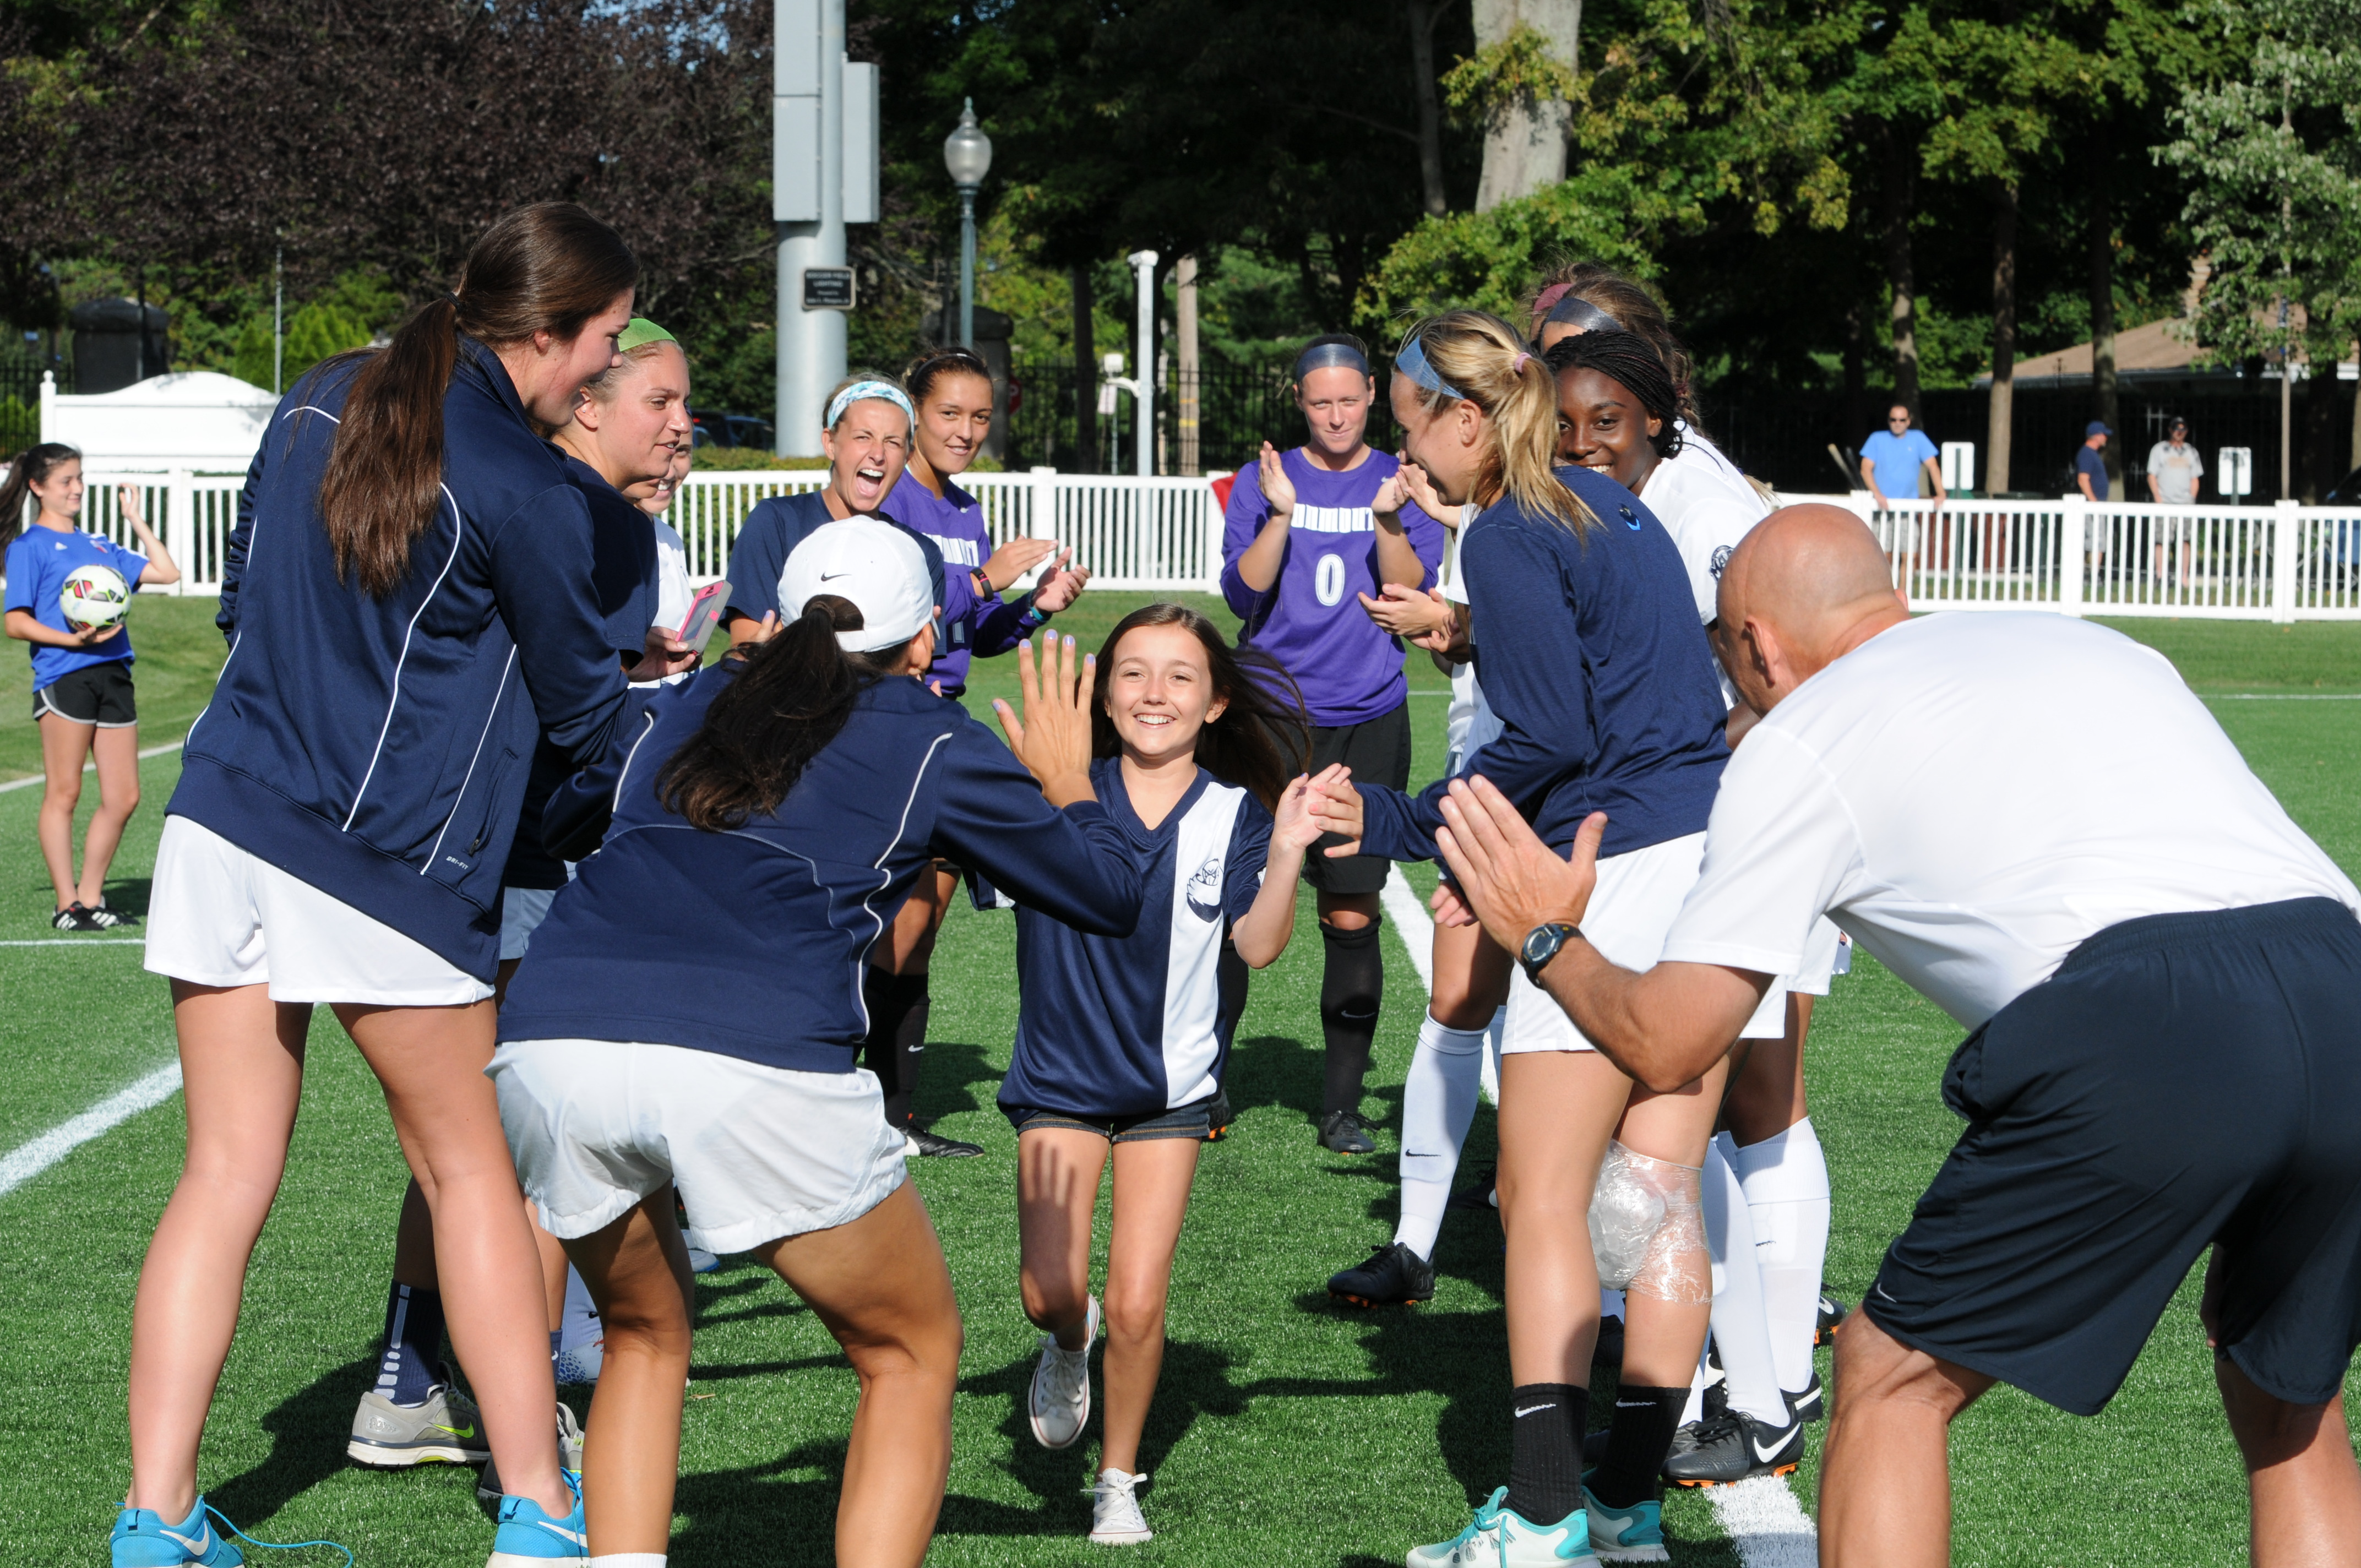 VIDEO: Emily and Monmouth University Women's Soccer